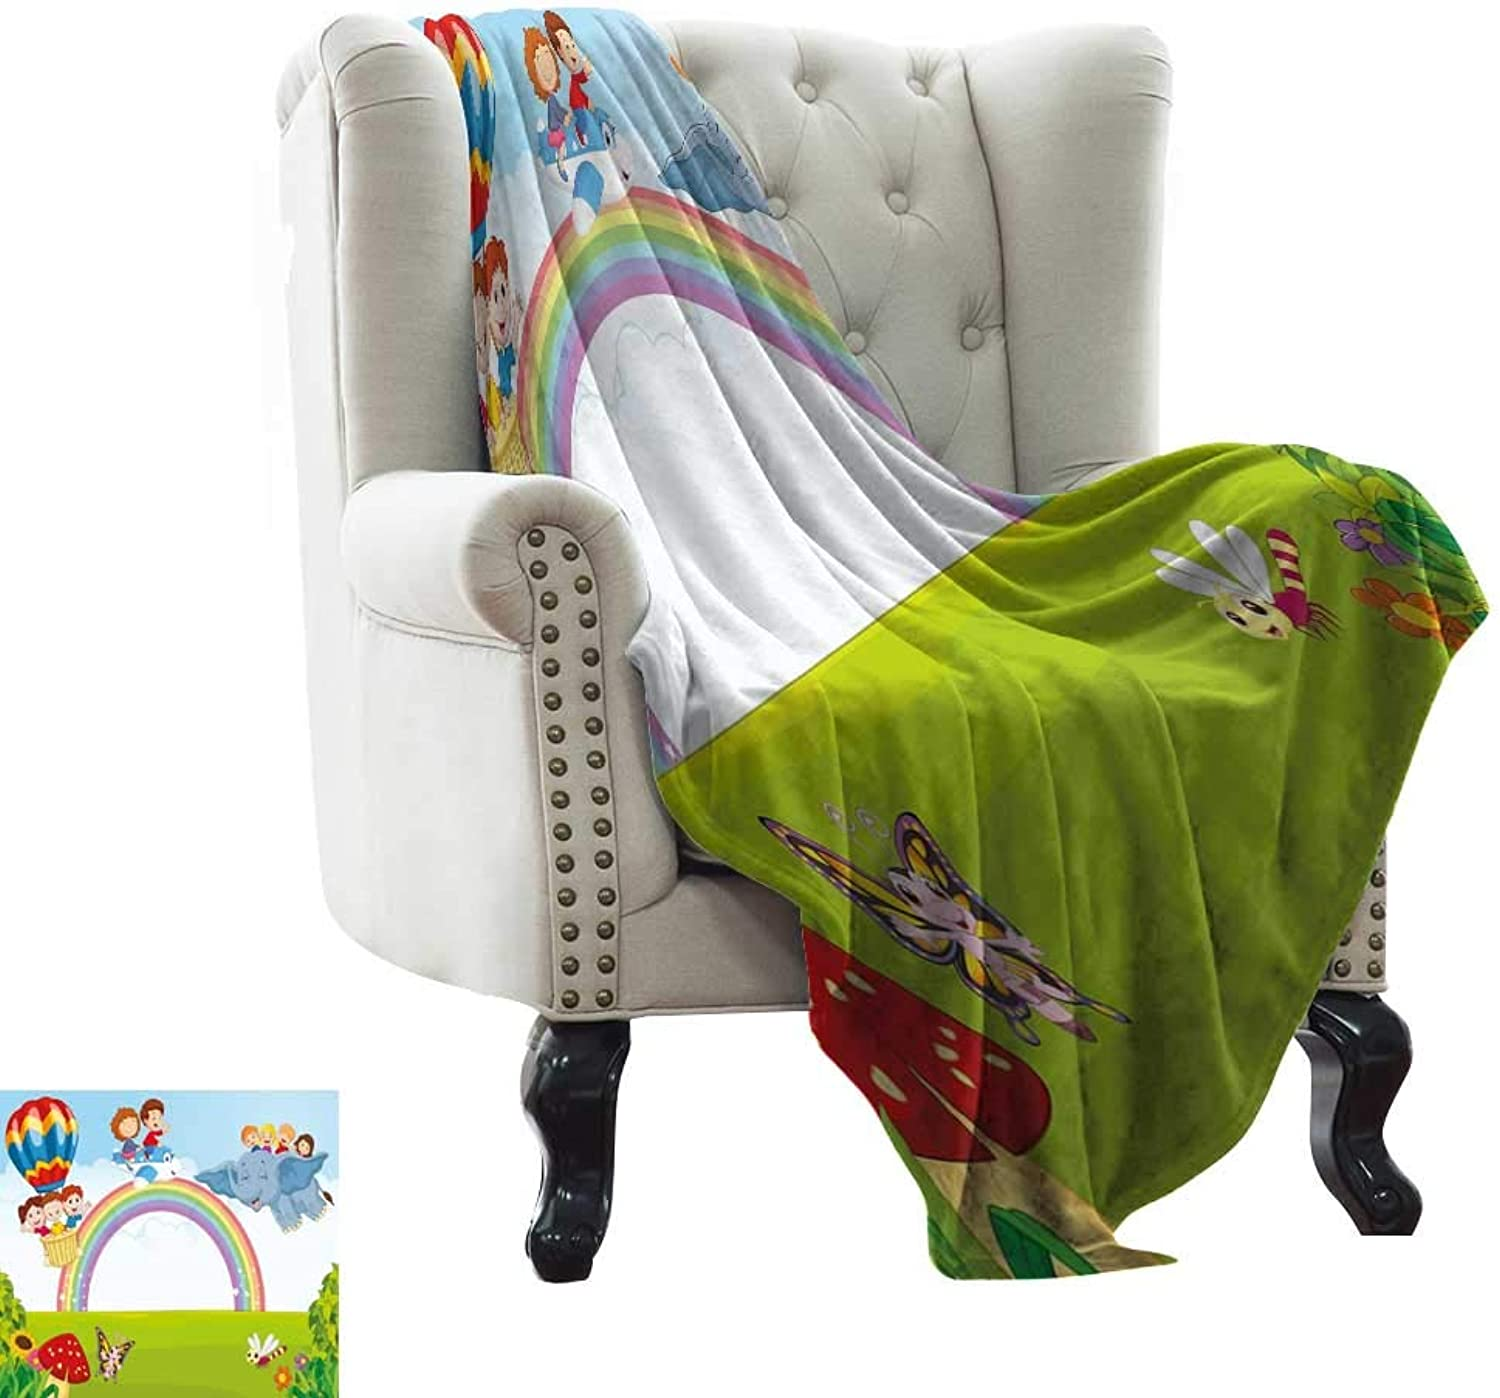 WinfreyDecor Decorative Throw Blanket Cartoon Kids Flying on Baloon Plane and Elephant with Green Field and a Rainbow Home, Couch, Outdoor, Travel Use 50  Wx60 L